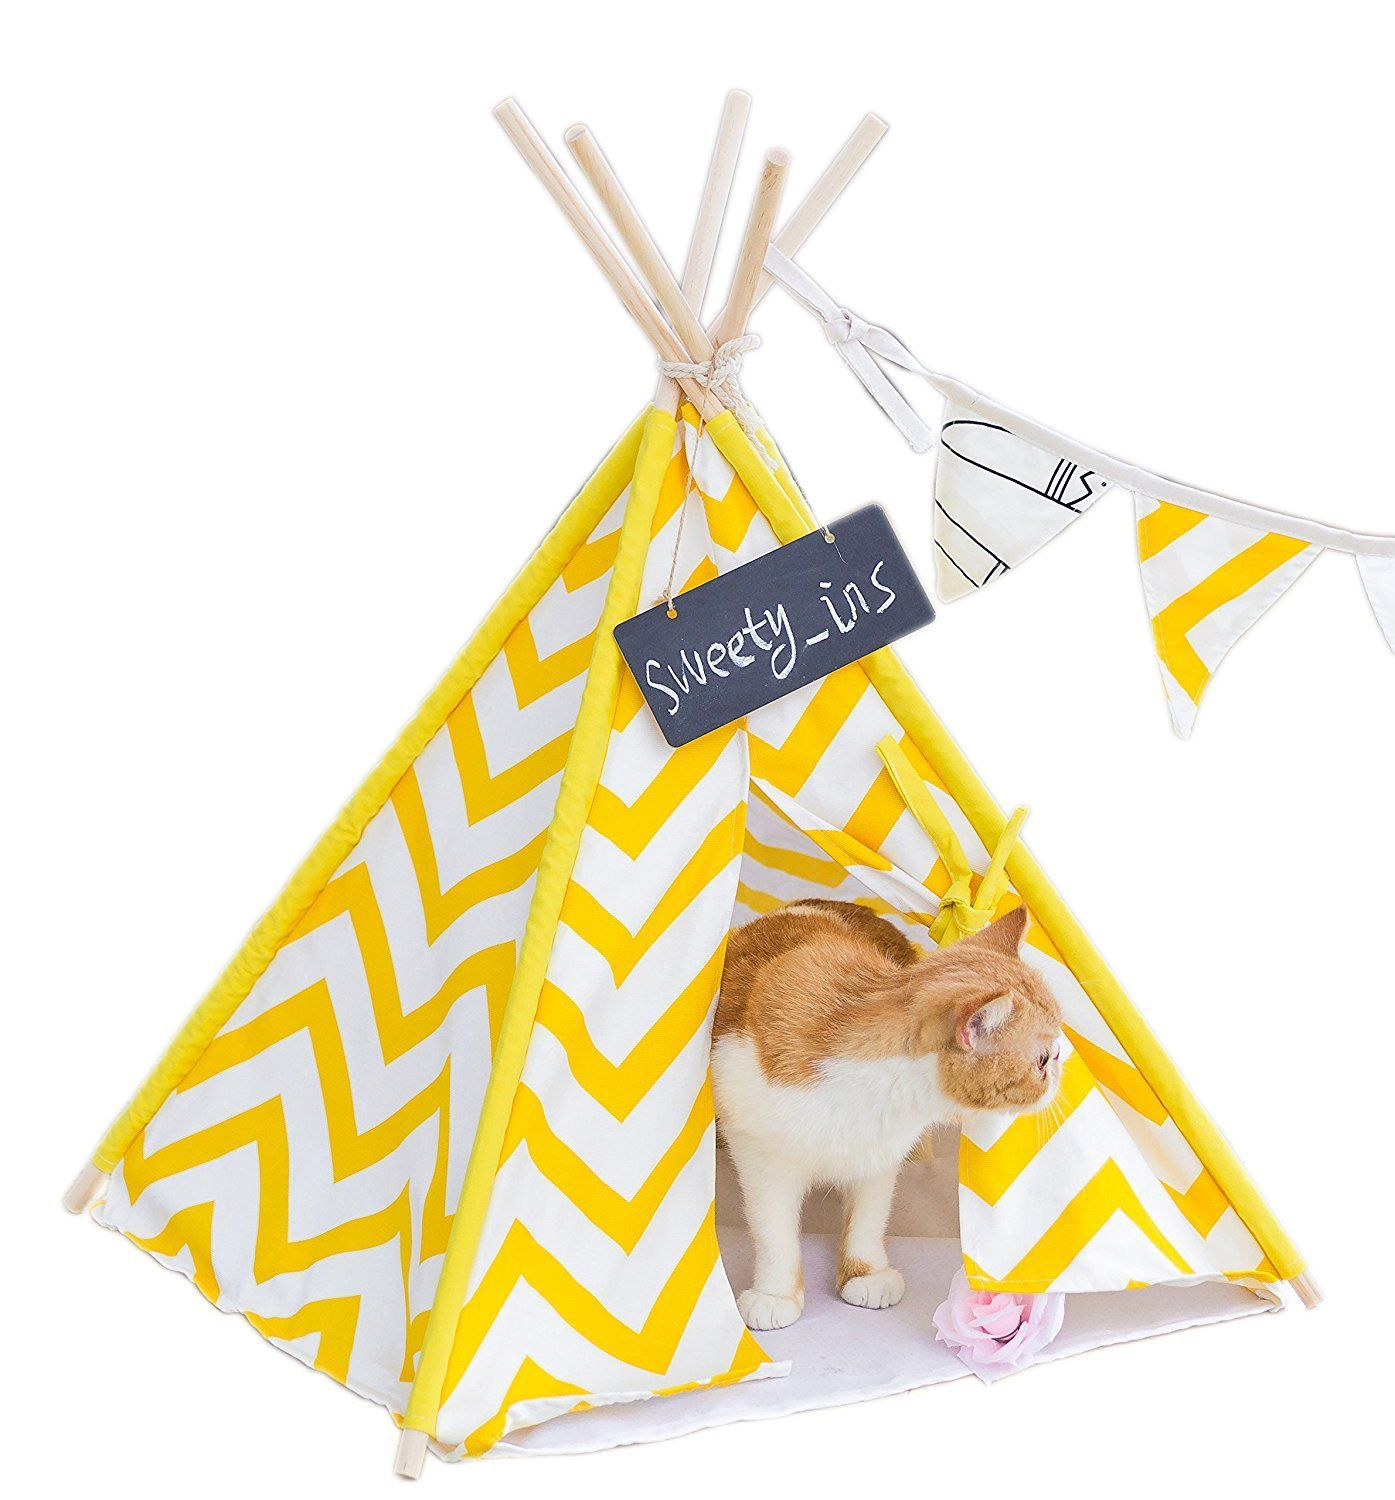 Sweety-ins Pet Teepee Dog and Cat Bed - Portable Dog Tents and Pet Houses for Small Dogs Yellow Stripe 24 Inch With No Cushion ** Details can be found by ...  sc 1 st  Pinterest & Sweety-ins Pet Teepee Dog and Cat Bed - Portable Dog Tents and Pet ...